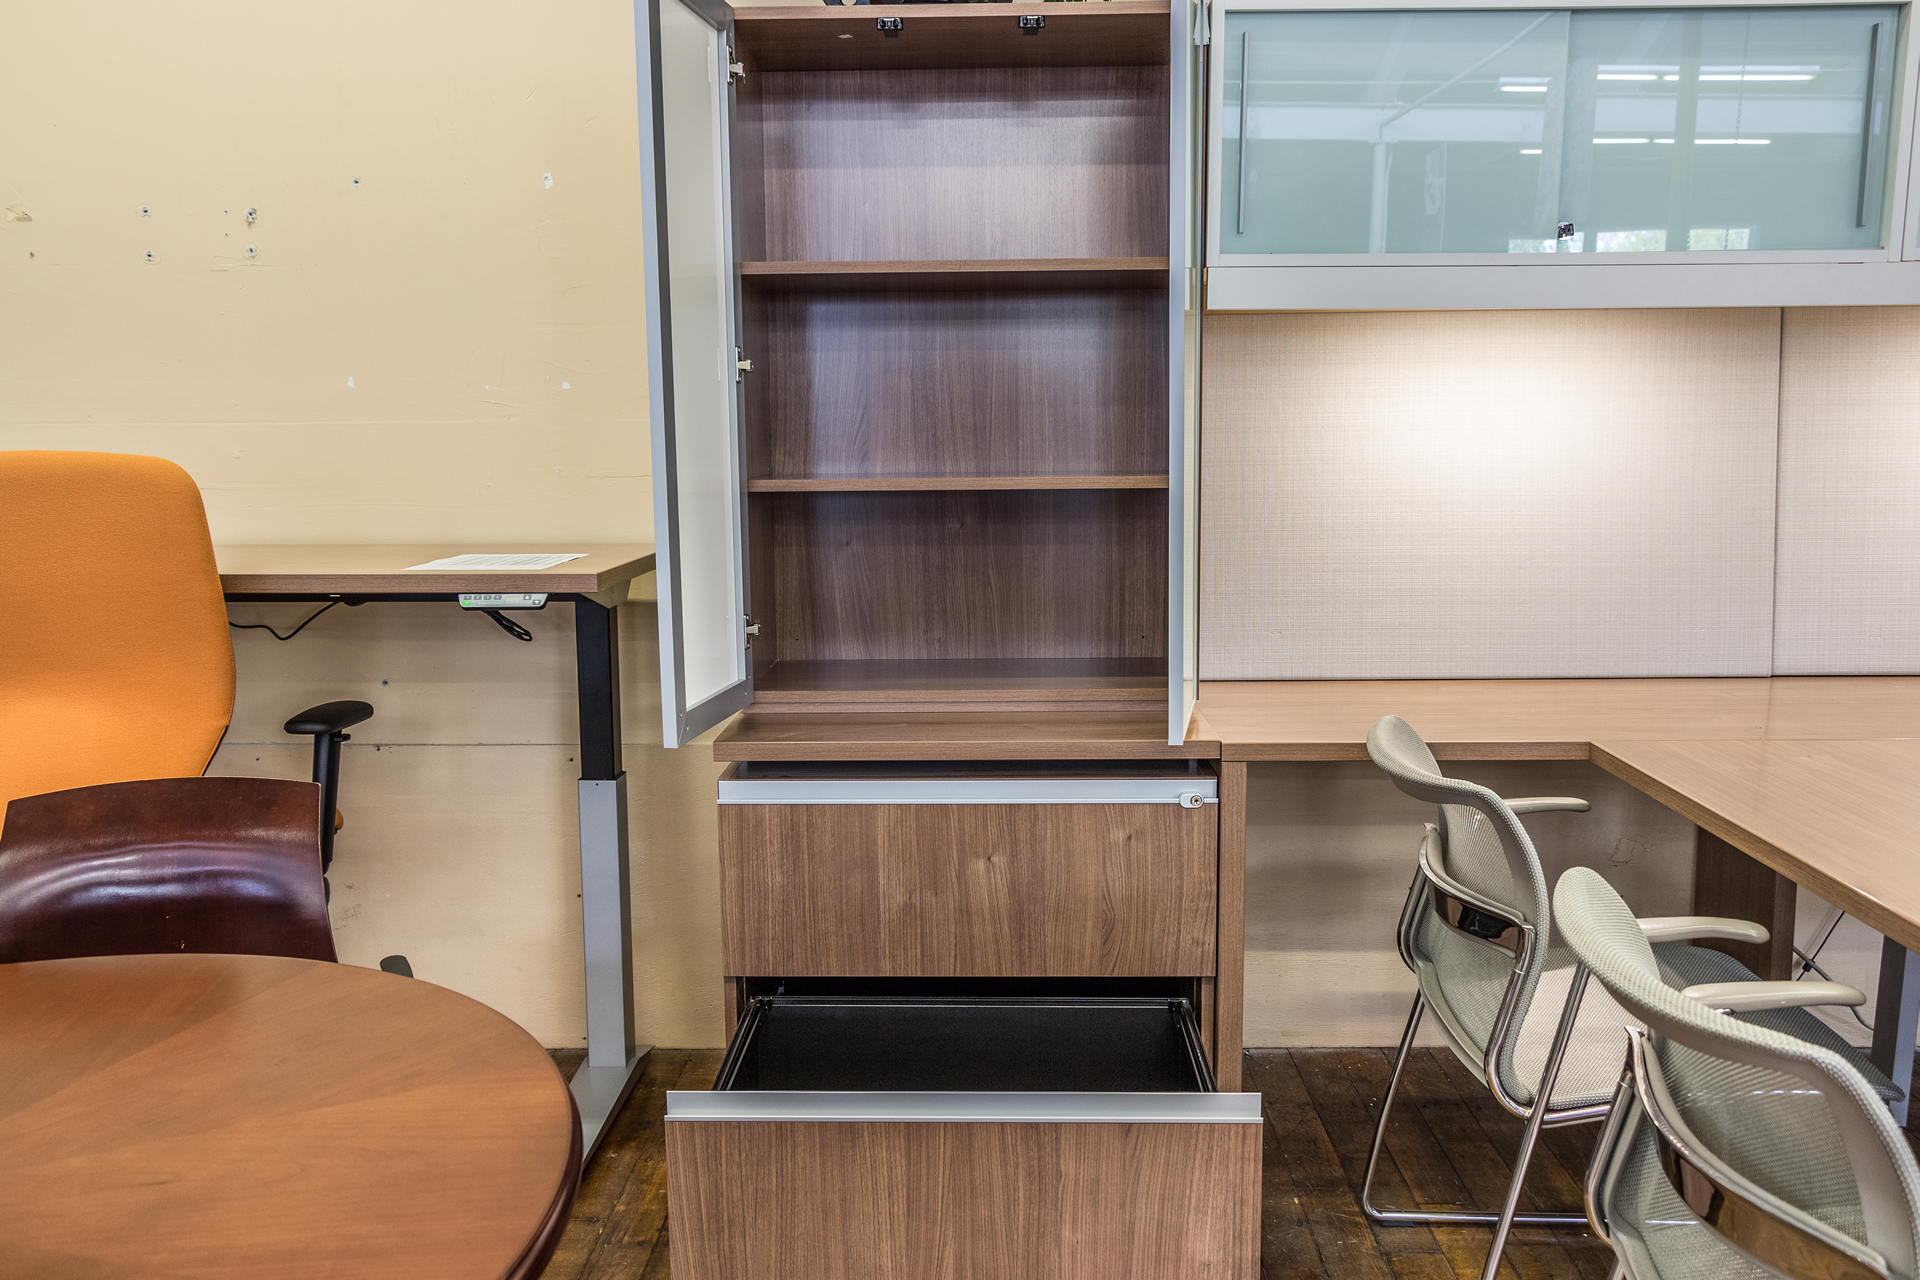 peartreeofficefurniture_peartreeofficefurniture_peartreeofficefurniture_img_9978_1.jpg